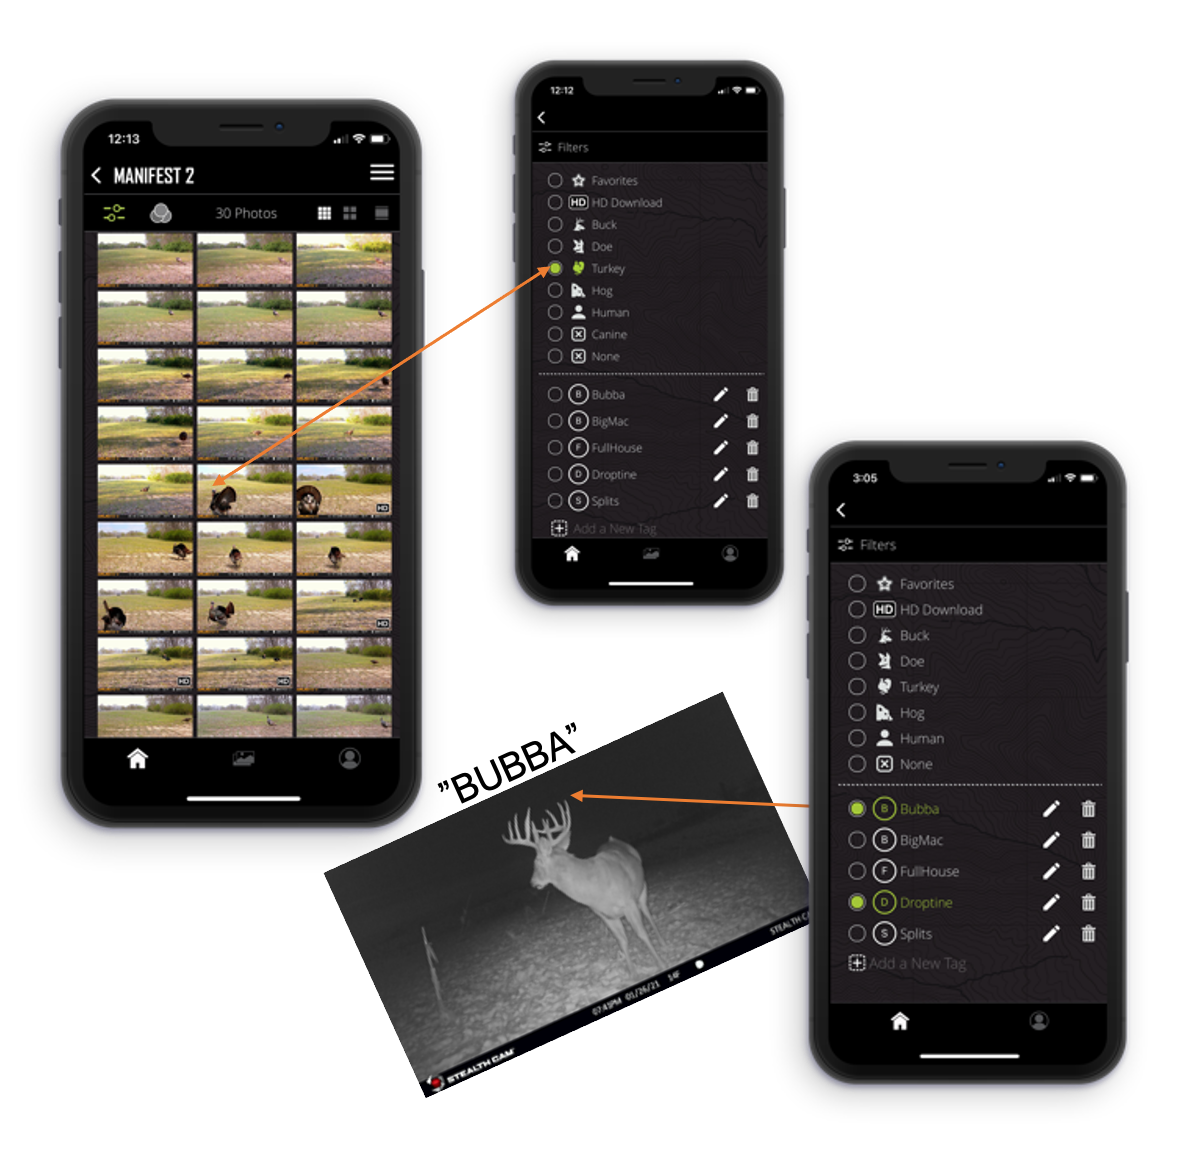 Tagging options in the Command Pro App